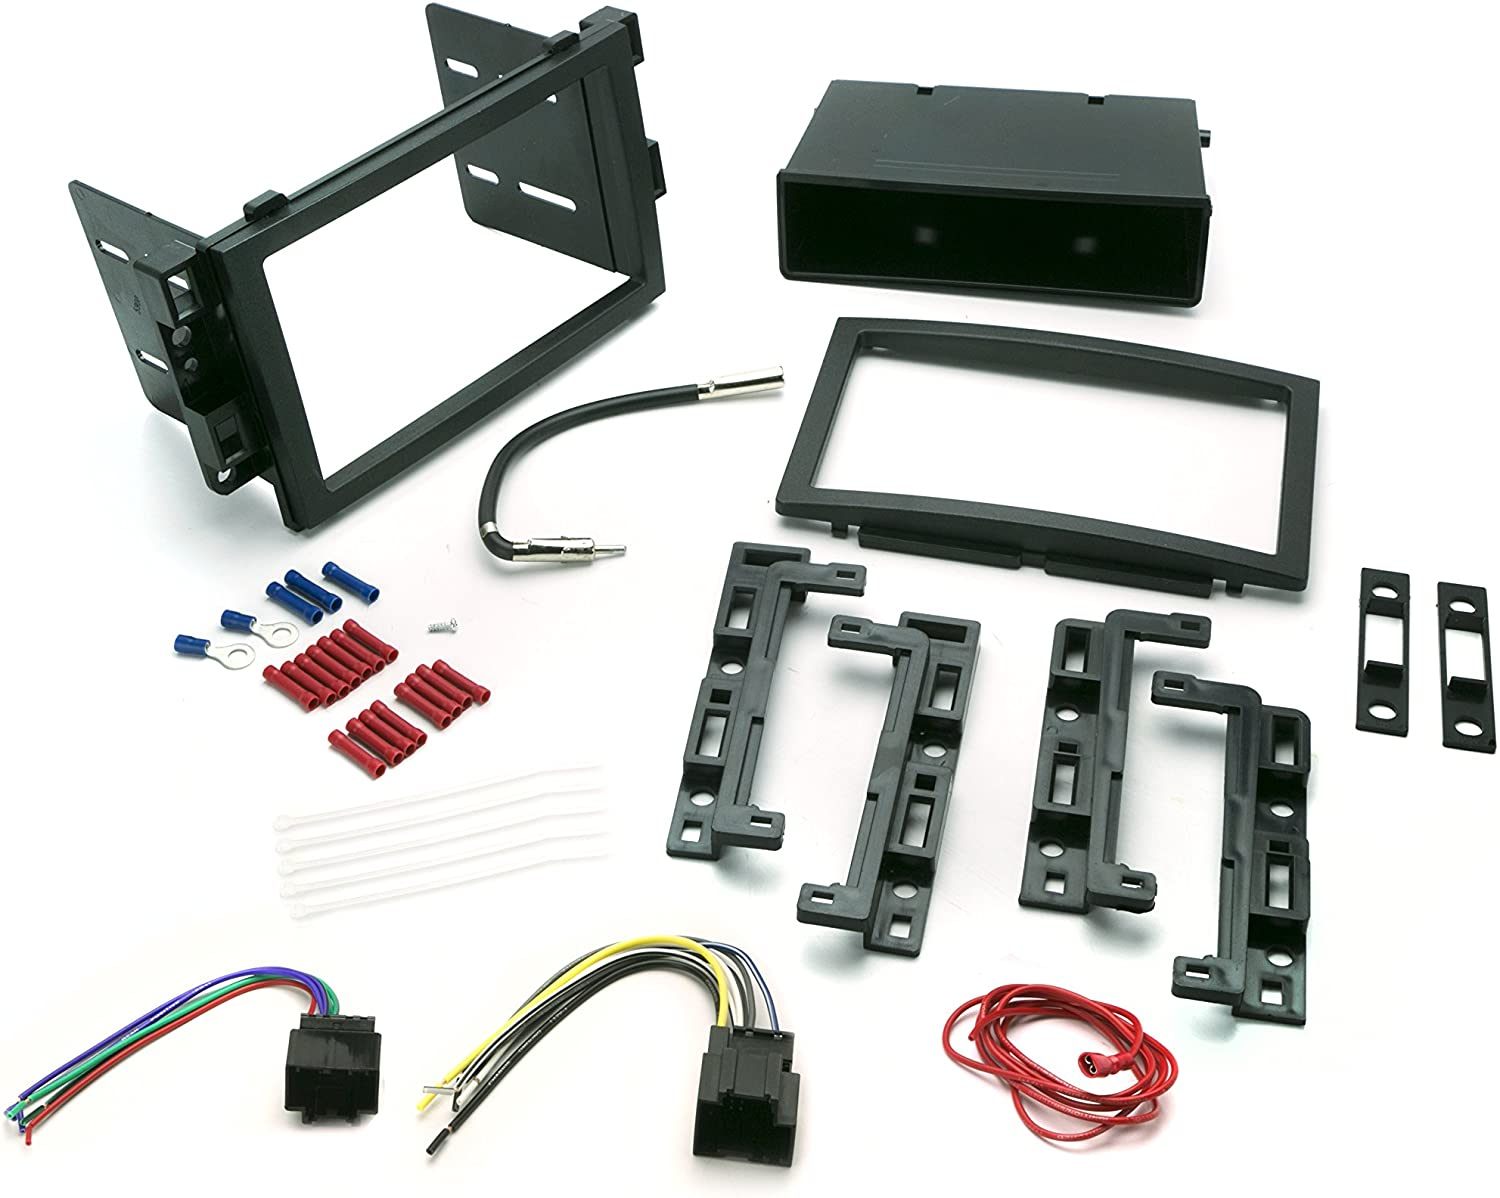 Install Centric ICGM12BNGM 2005-16 Class II Complete Installation Solution for Car Stereos